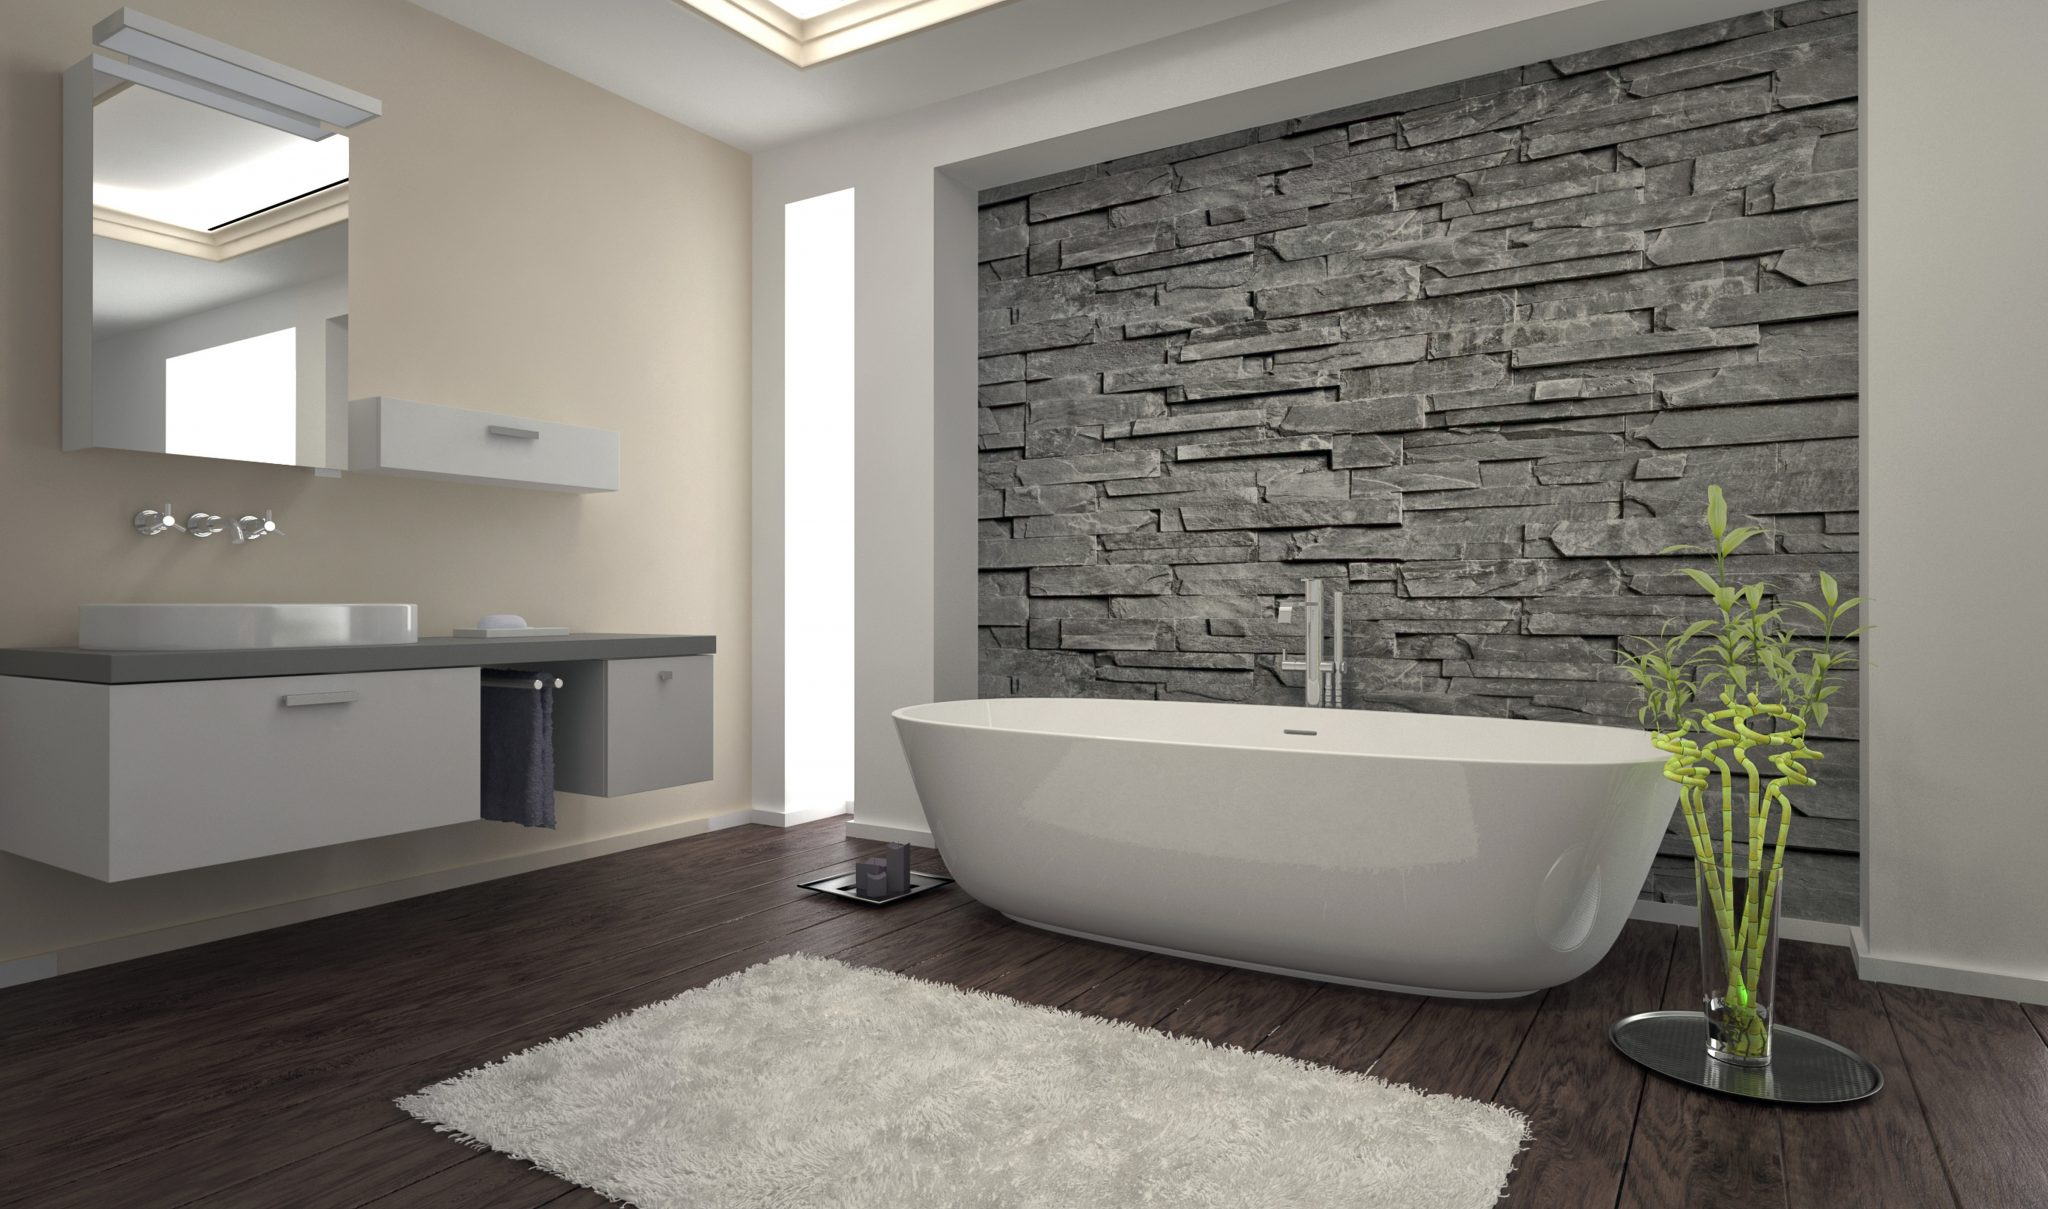 How Ensure Perfection With Bathroom Inspiration? - goodworksfurniture